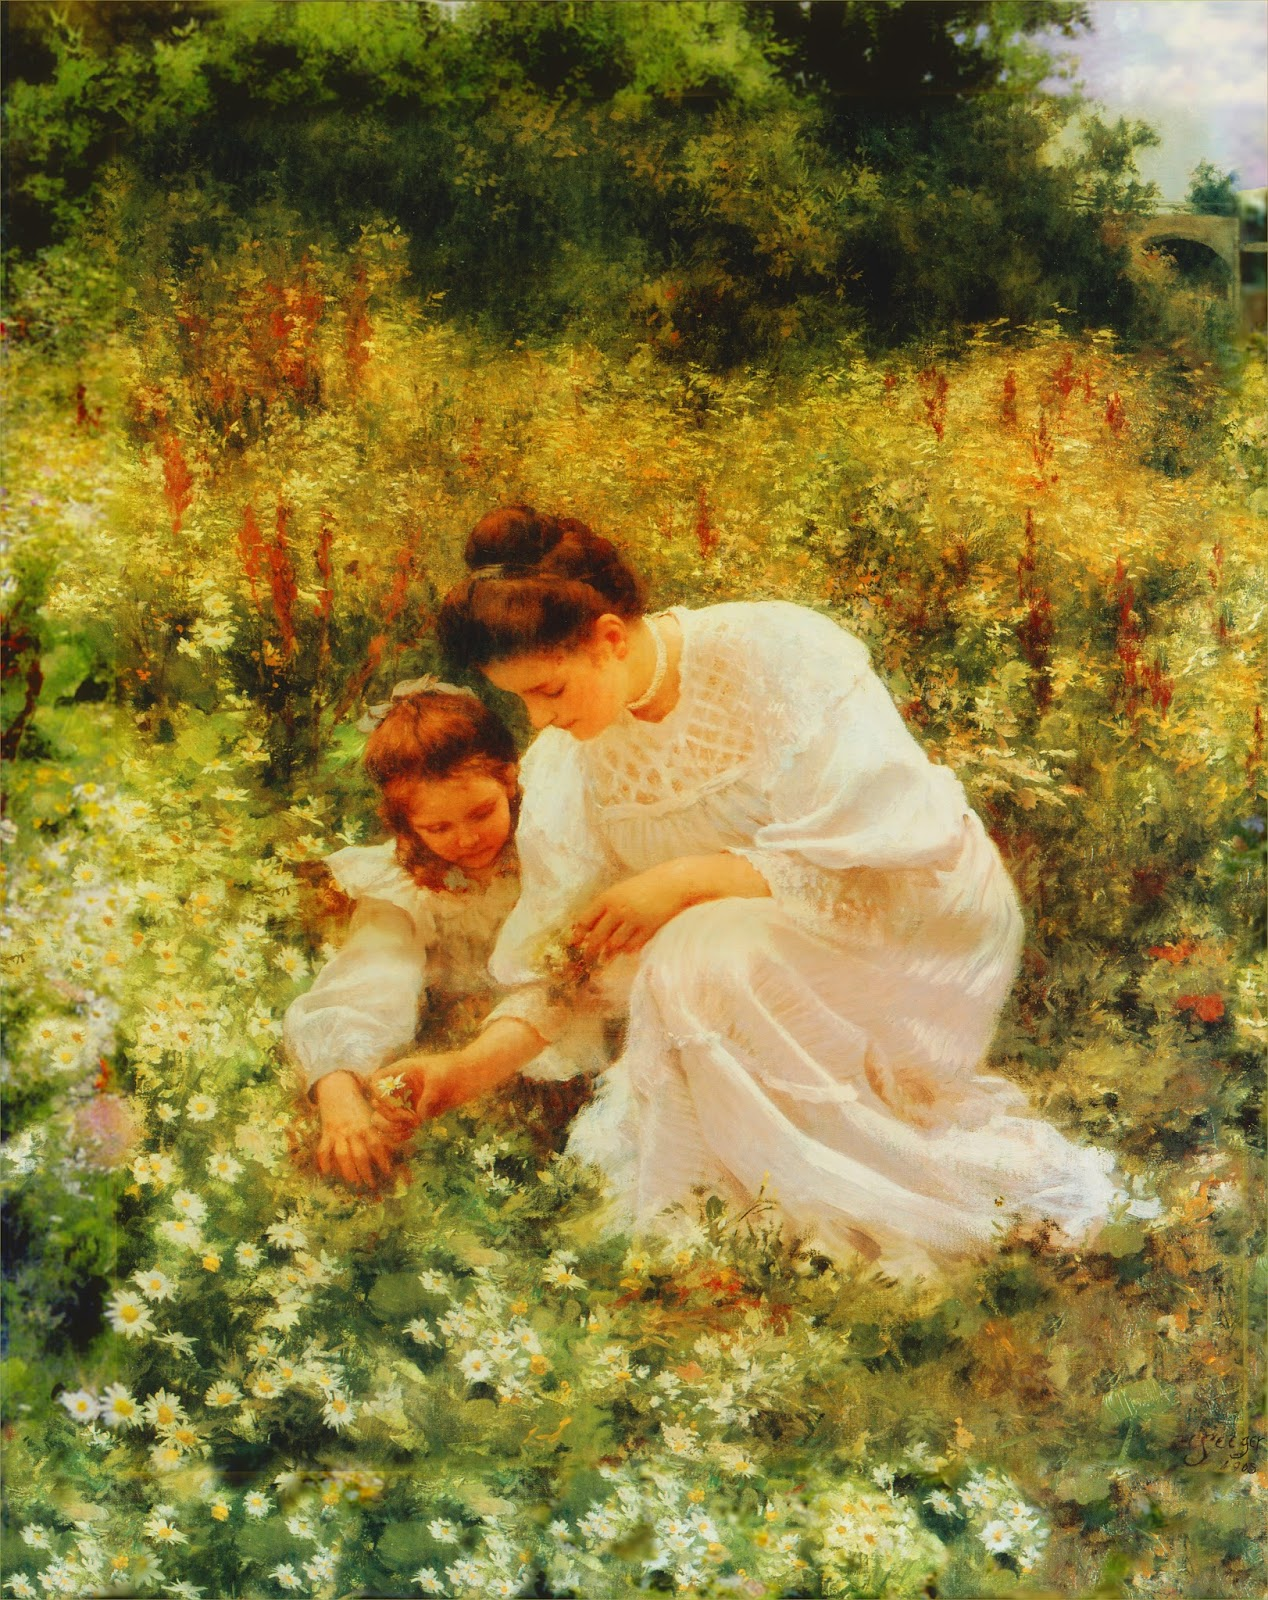 Field garden public domain vintage poem in daisy days by mary below is a poem called in daisy days written by mary elizabeth blake mrs blakes admirers included theodore izmirmasajfo